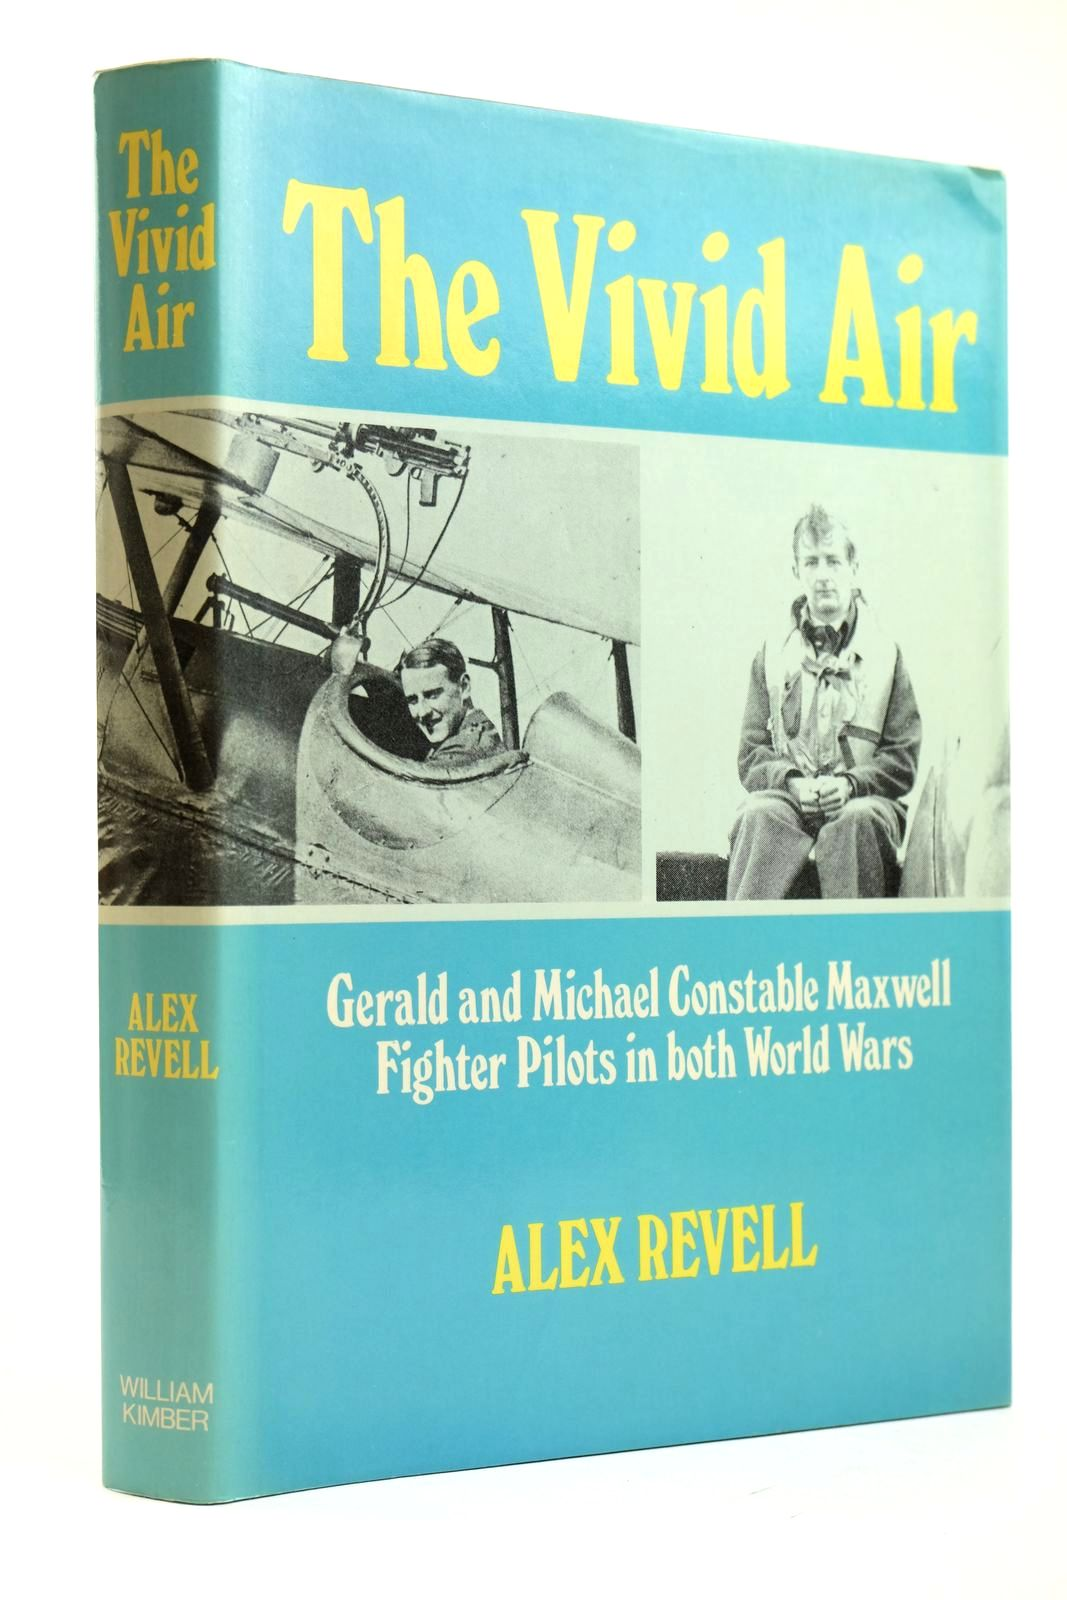 Photo of THE VIVID AIR written by Revell, Alex published by William Kimber (STOCK CODE: 2131883)  for sale by Stella & Rose's Books